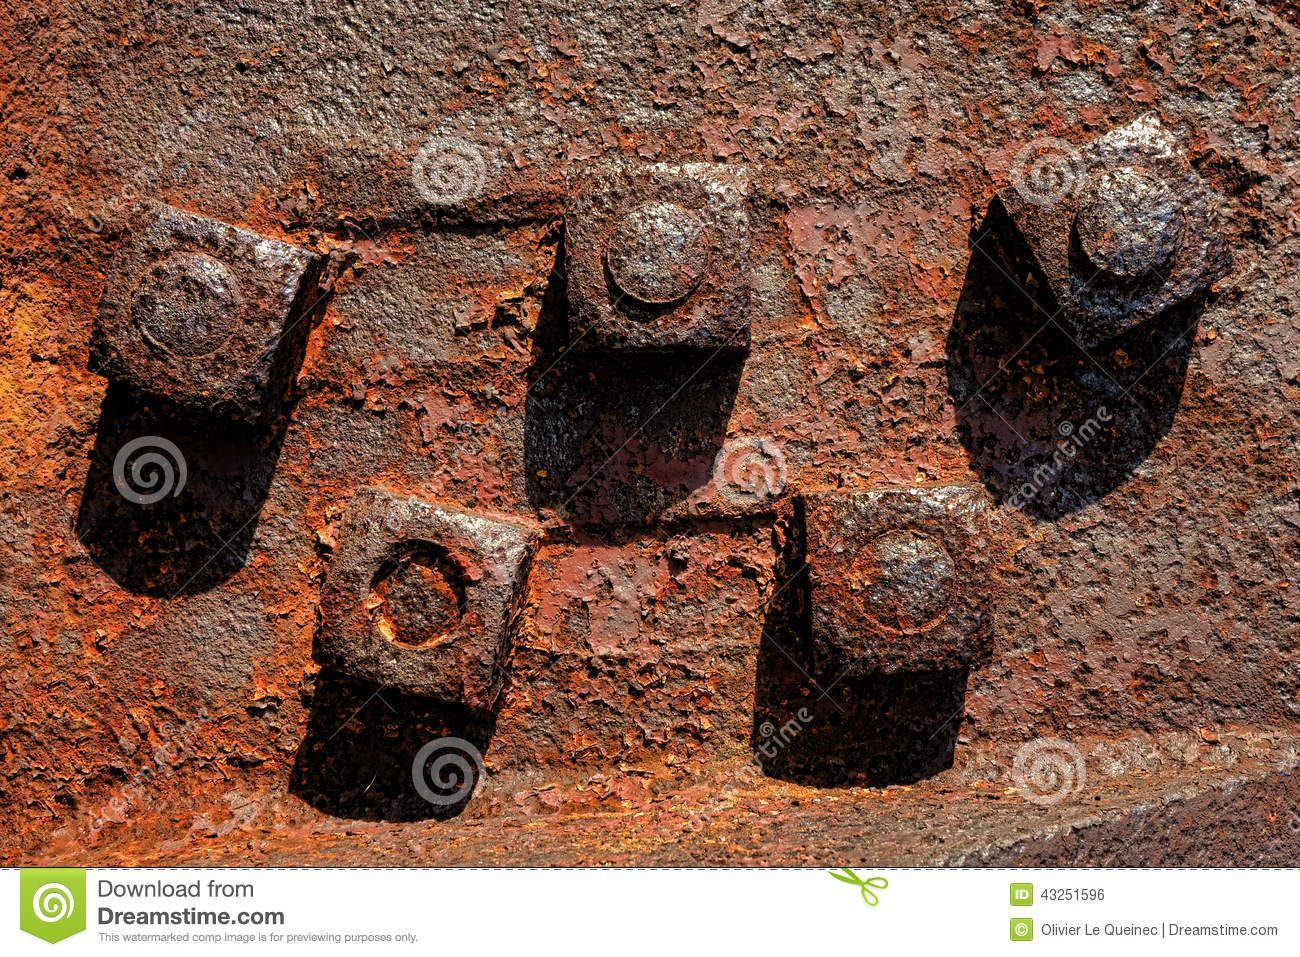 Antique Rusty Nuts on Industrial Rust Metal Bolts